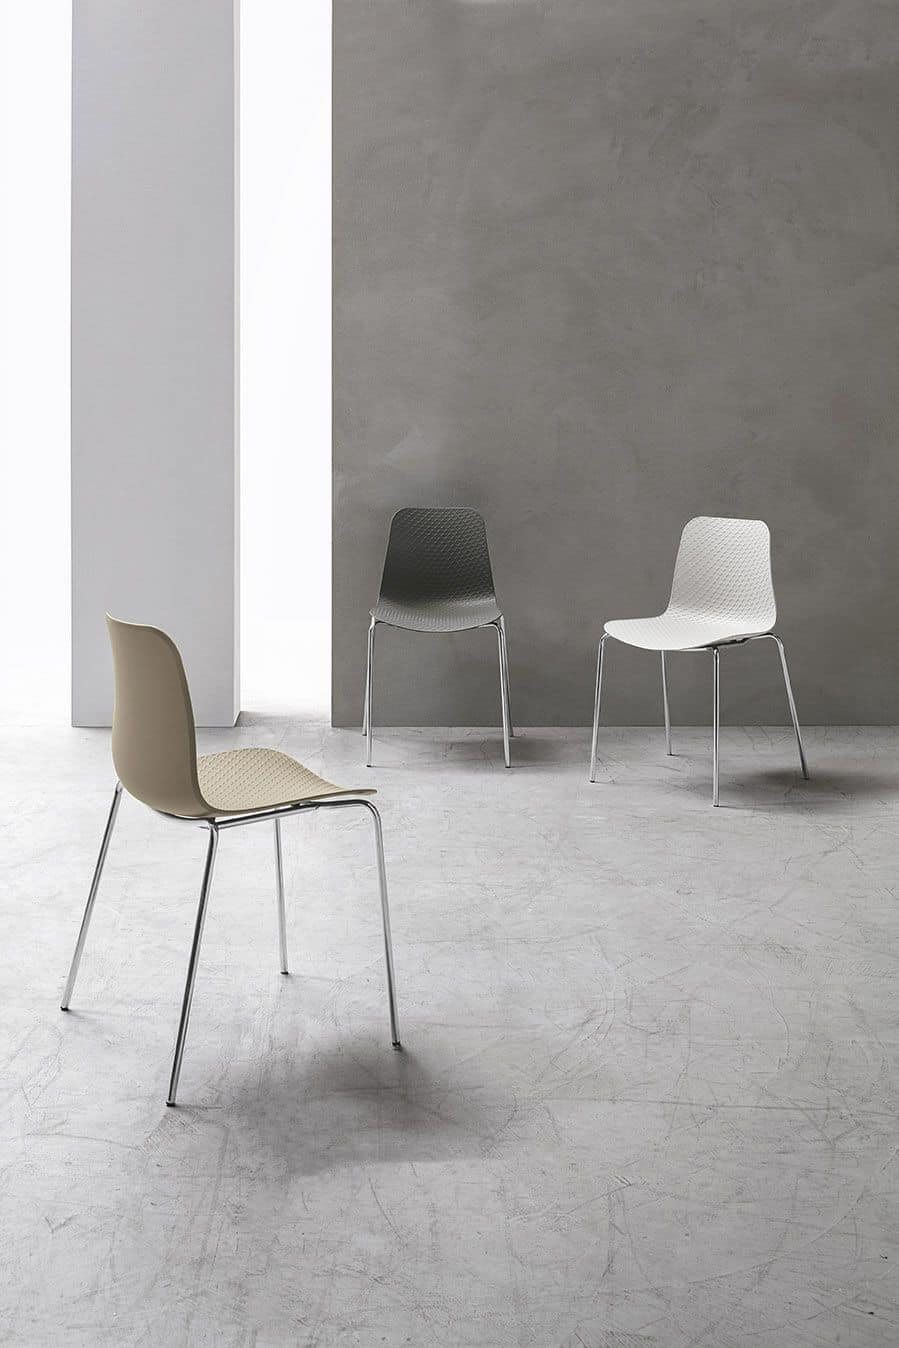 COLONIA SE182, Chair with metal frame, seat and back in polypropylene, in modern style